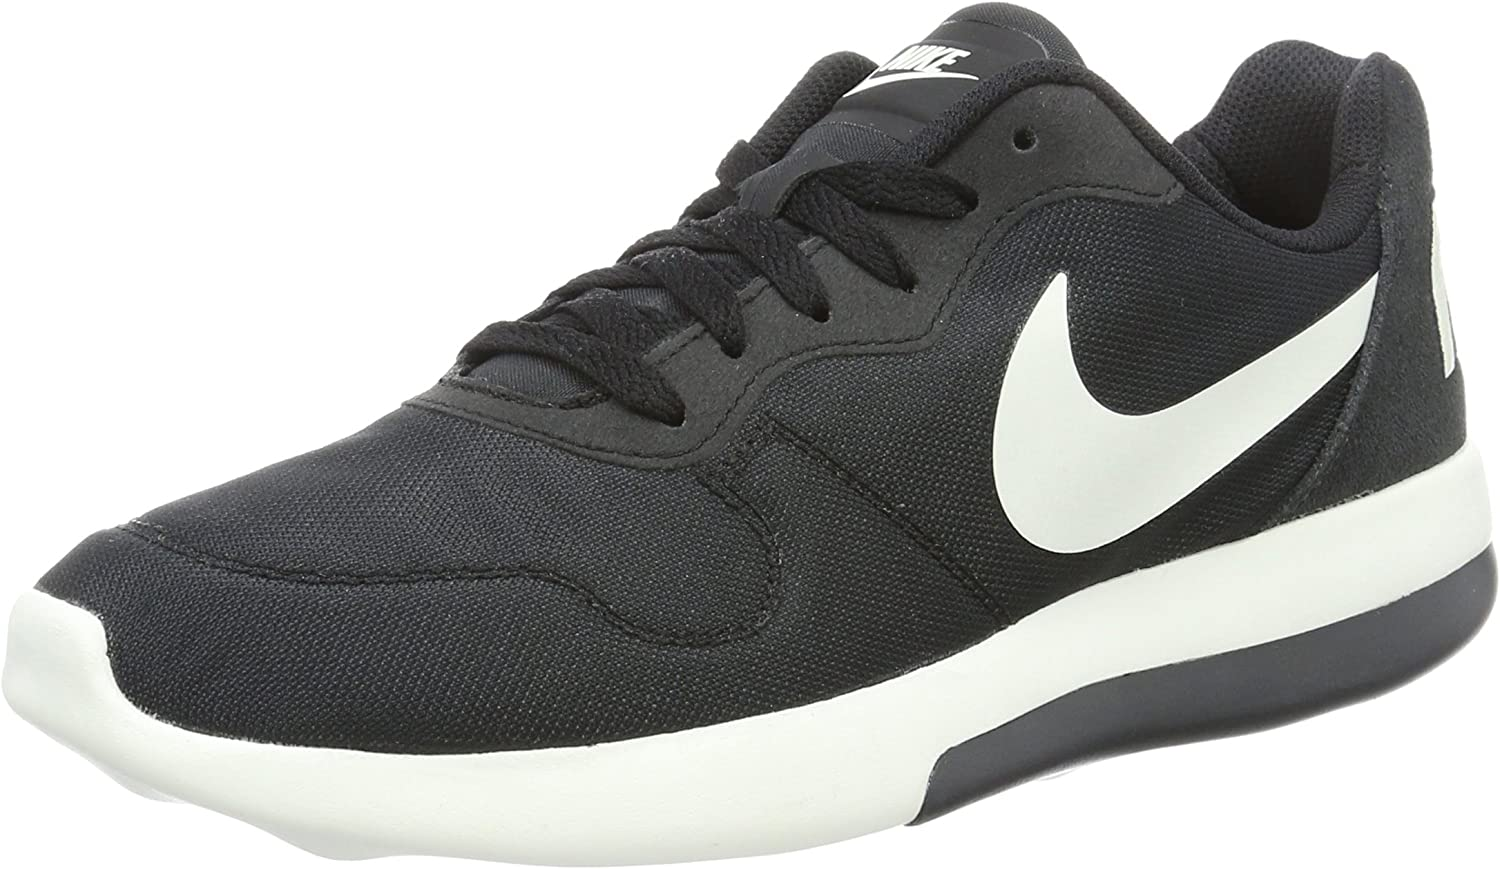 Nike Men's 844857 010 Trainers